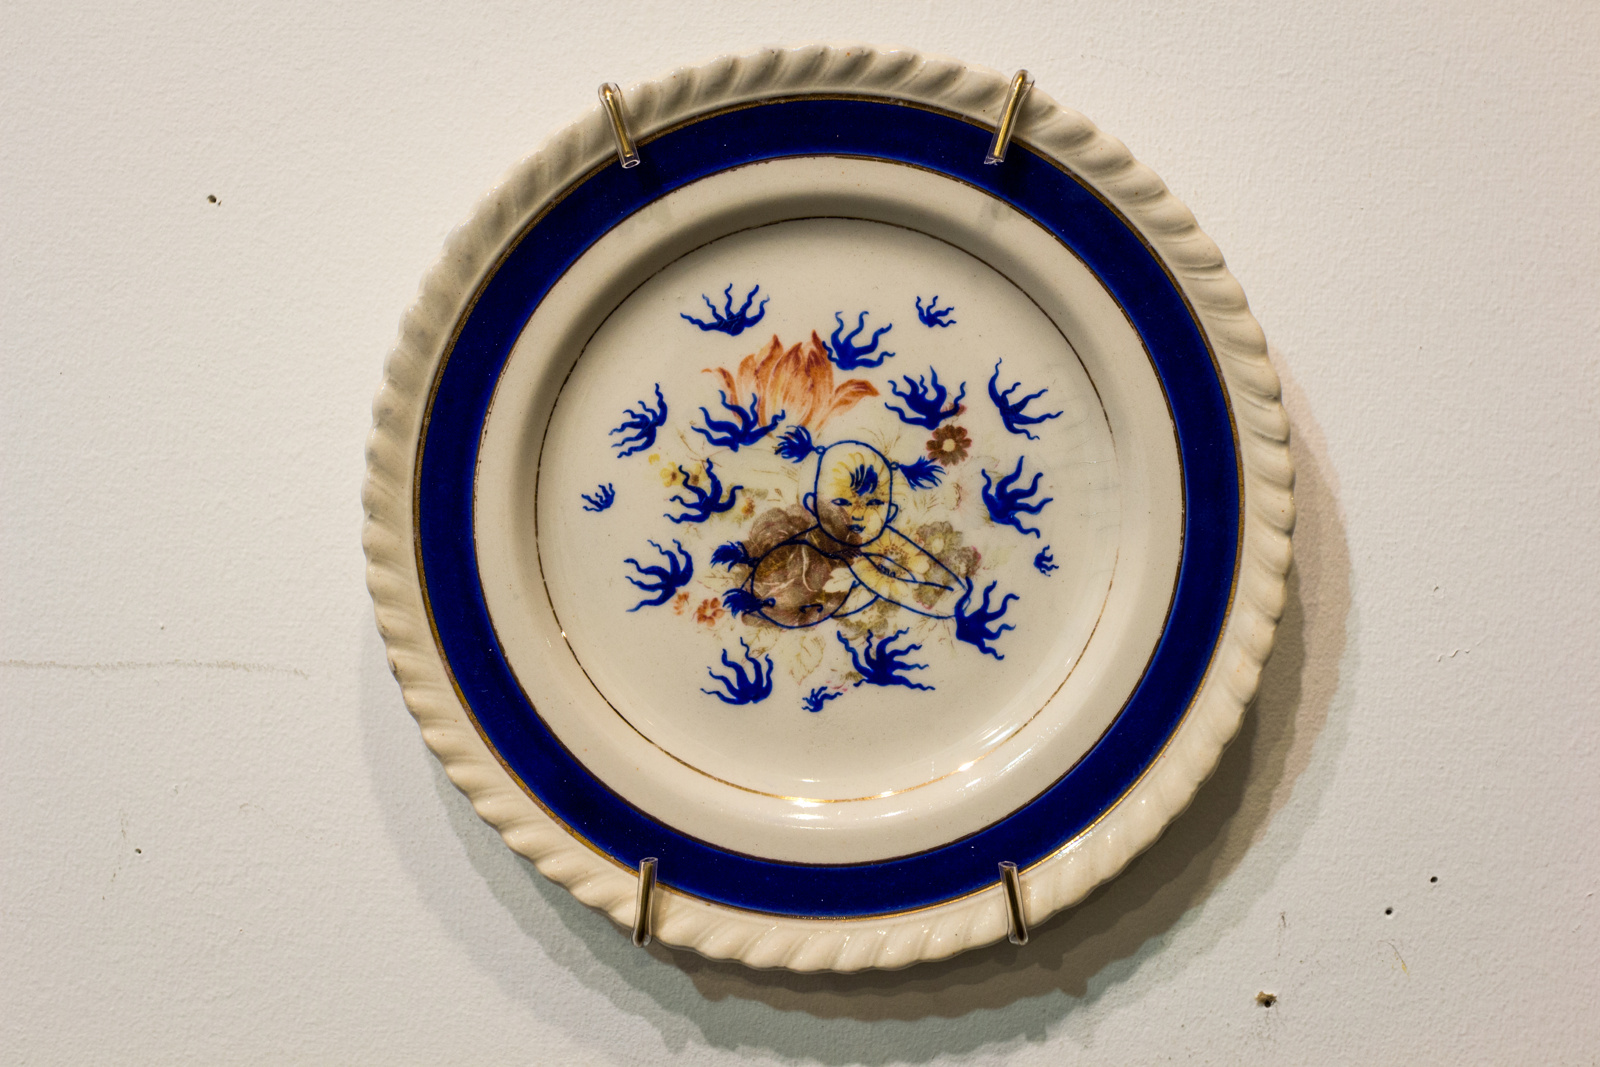 China painting on found plate, 6.25 x 6.25 inches, 2013